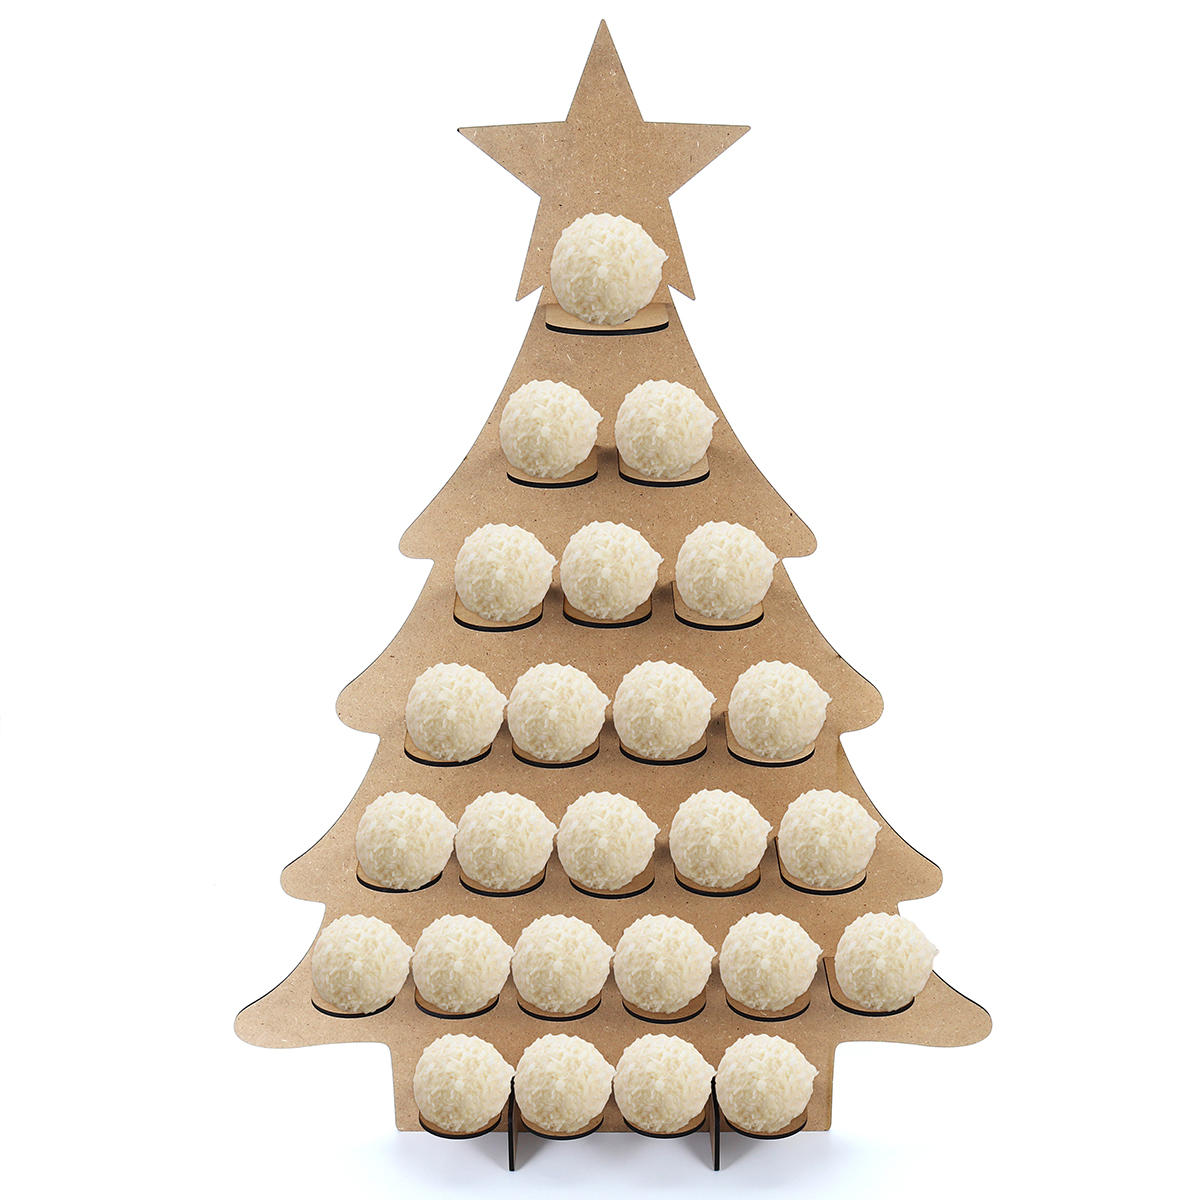 Wooden Family Advent Calendar Christmas Tree 25 Chocolates Stand Rack DIY Decorations COD